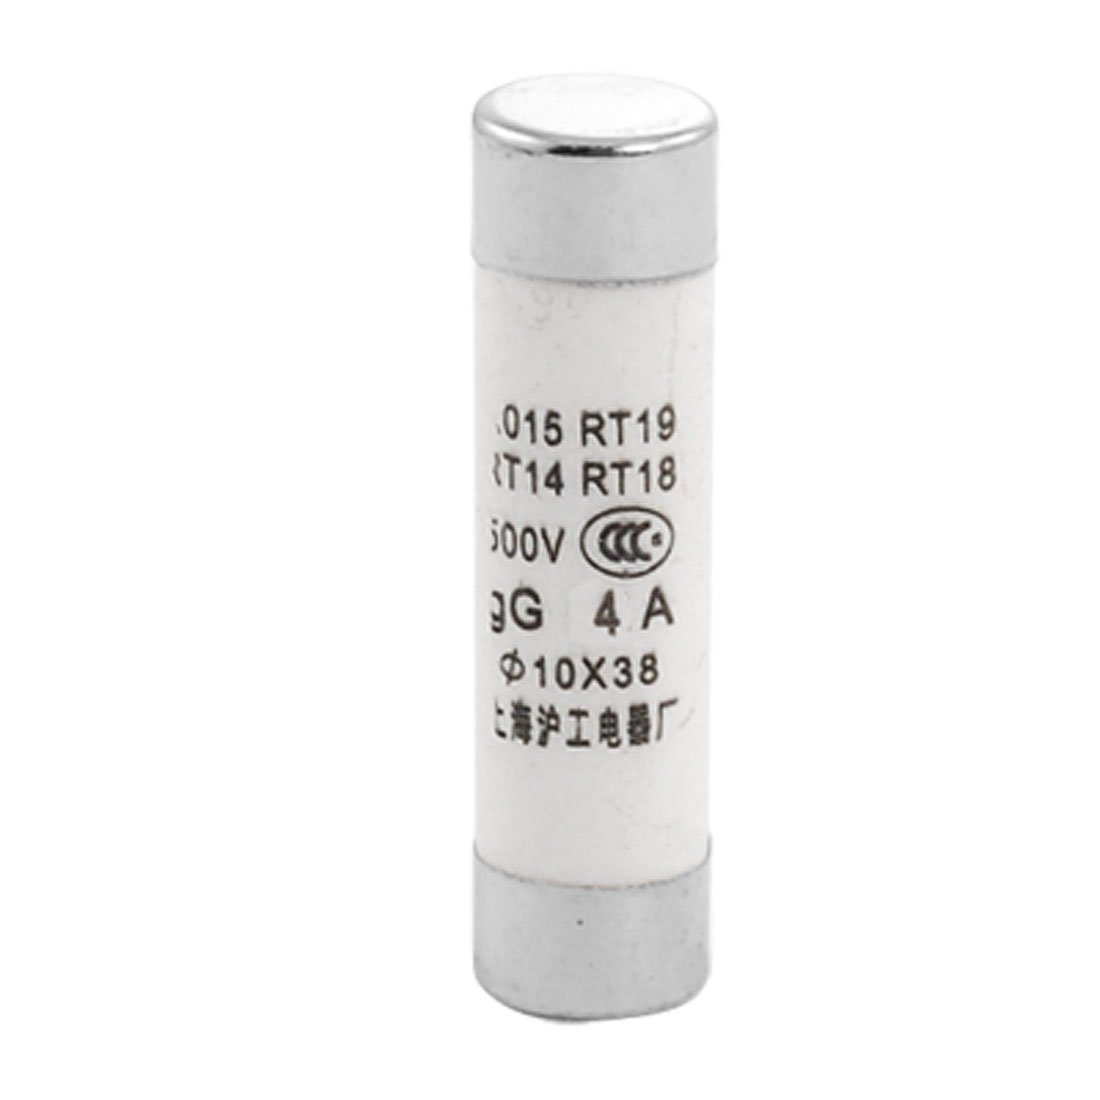 Available in 1A 1.6A 2A 3.15A 4A 5A 6.3A 8A /& 10A Related Voltage 250v Size 20mm x 5mm T1A electrosmart Pack of 10 Anti-Surge//Time Delay Ceramic Fuse